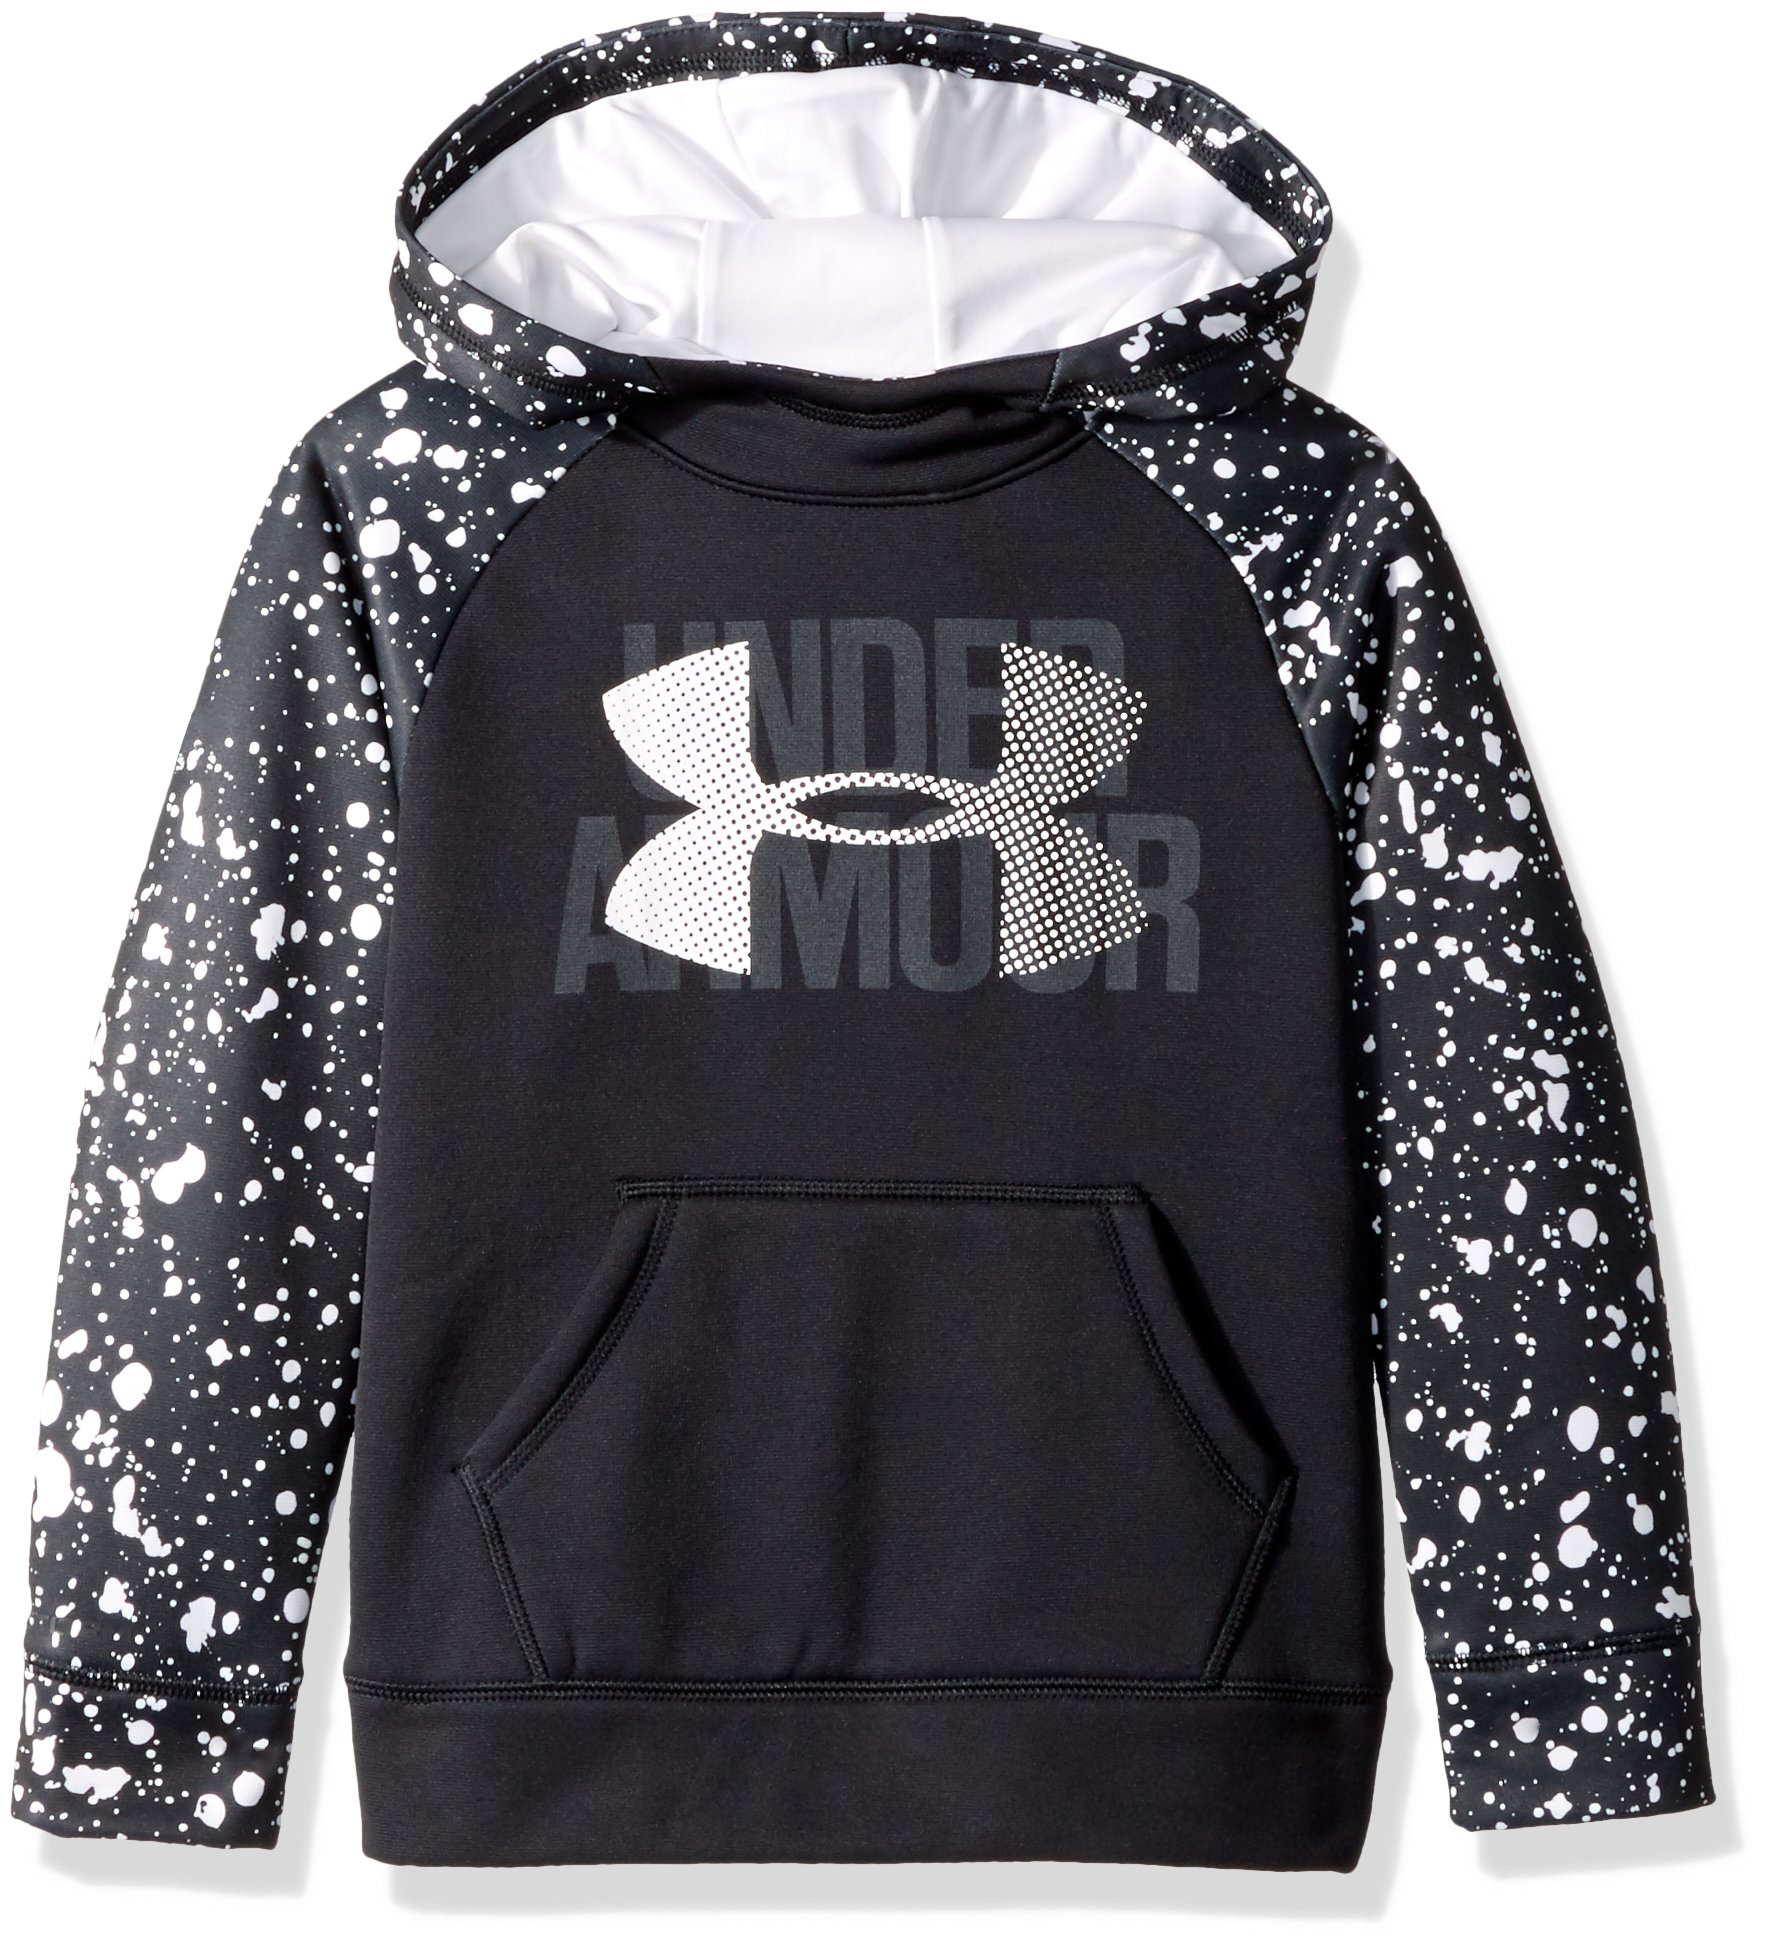 Under Armour Girls' Armour Fleece Big Logo Printed Hoodie, Black (002)/White, Youth X-Small